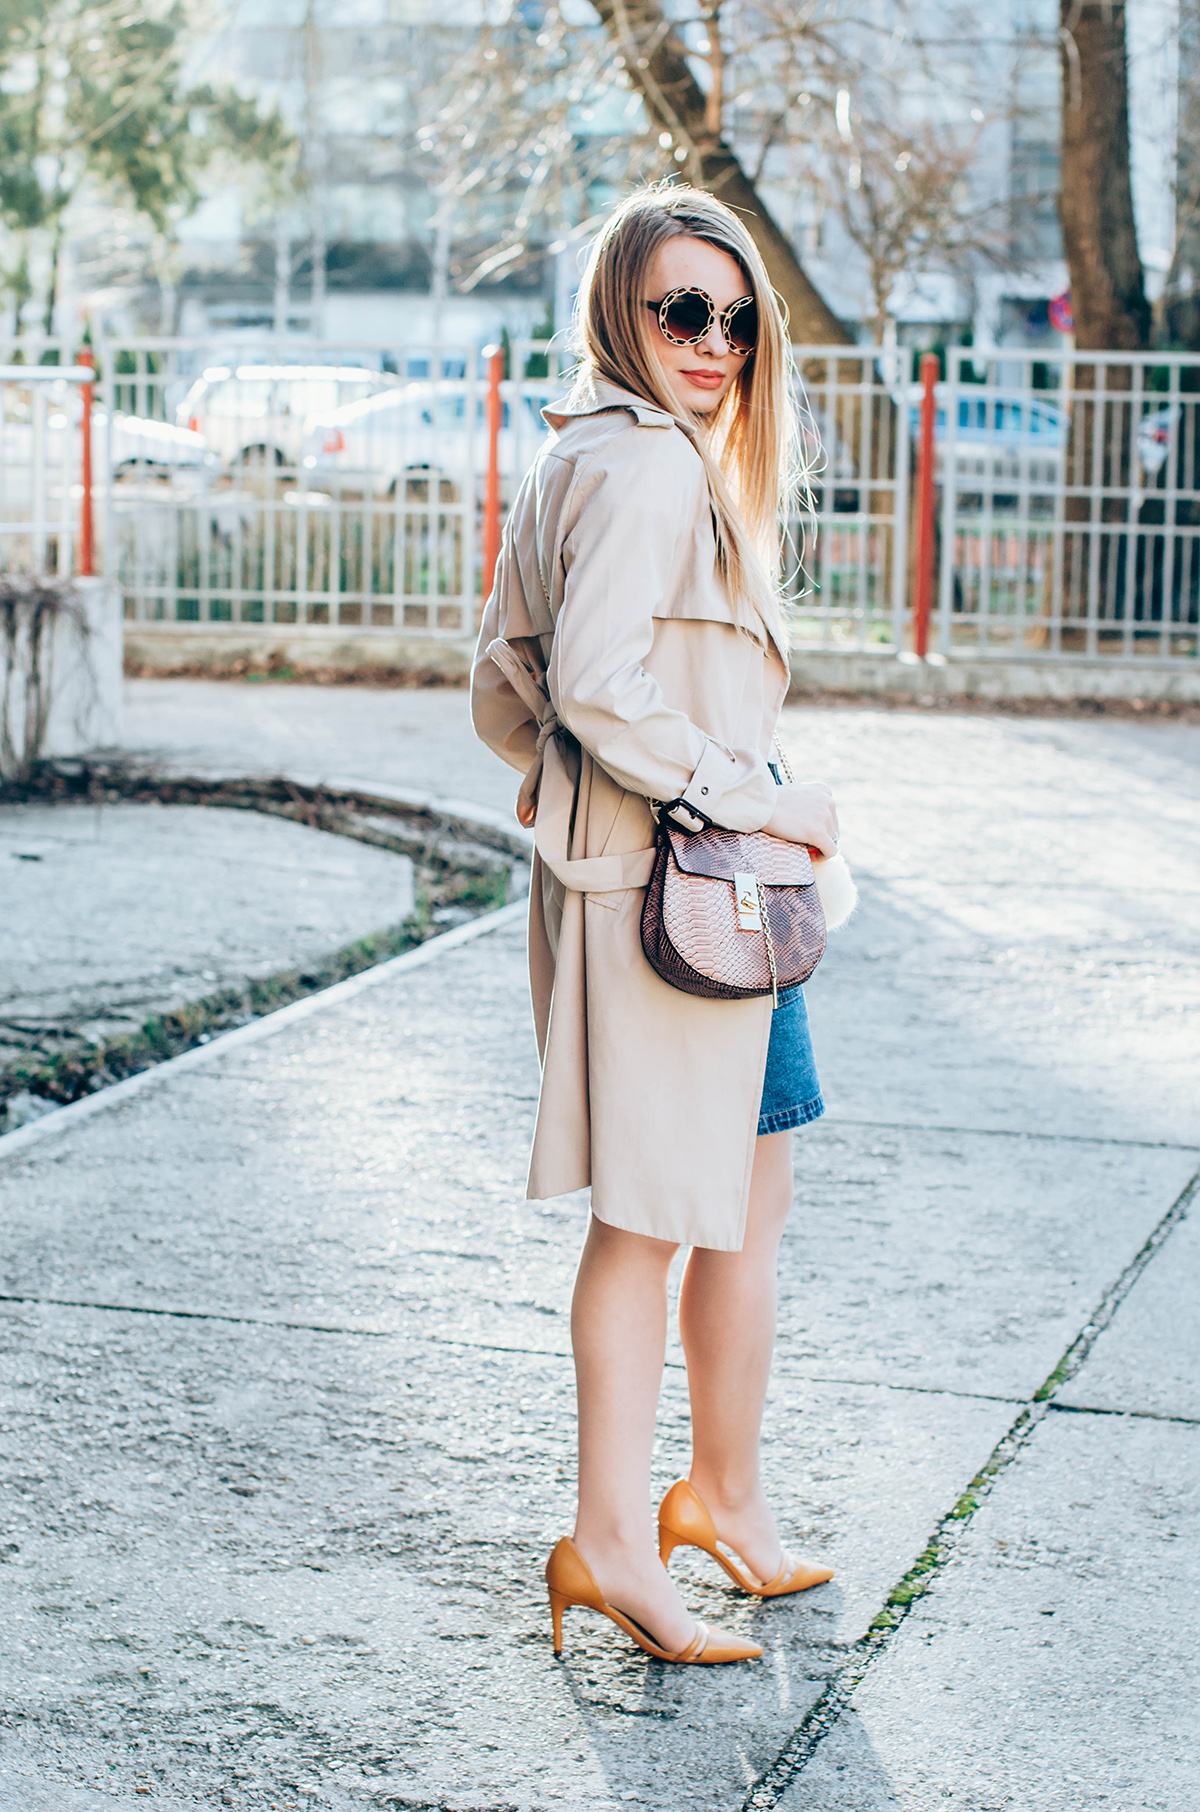 shein-buttoned-denim-skirt-trench-coat-outfit-snake-chloe-bag-fur-pom-pom-outfit (9)